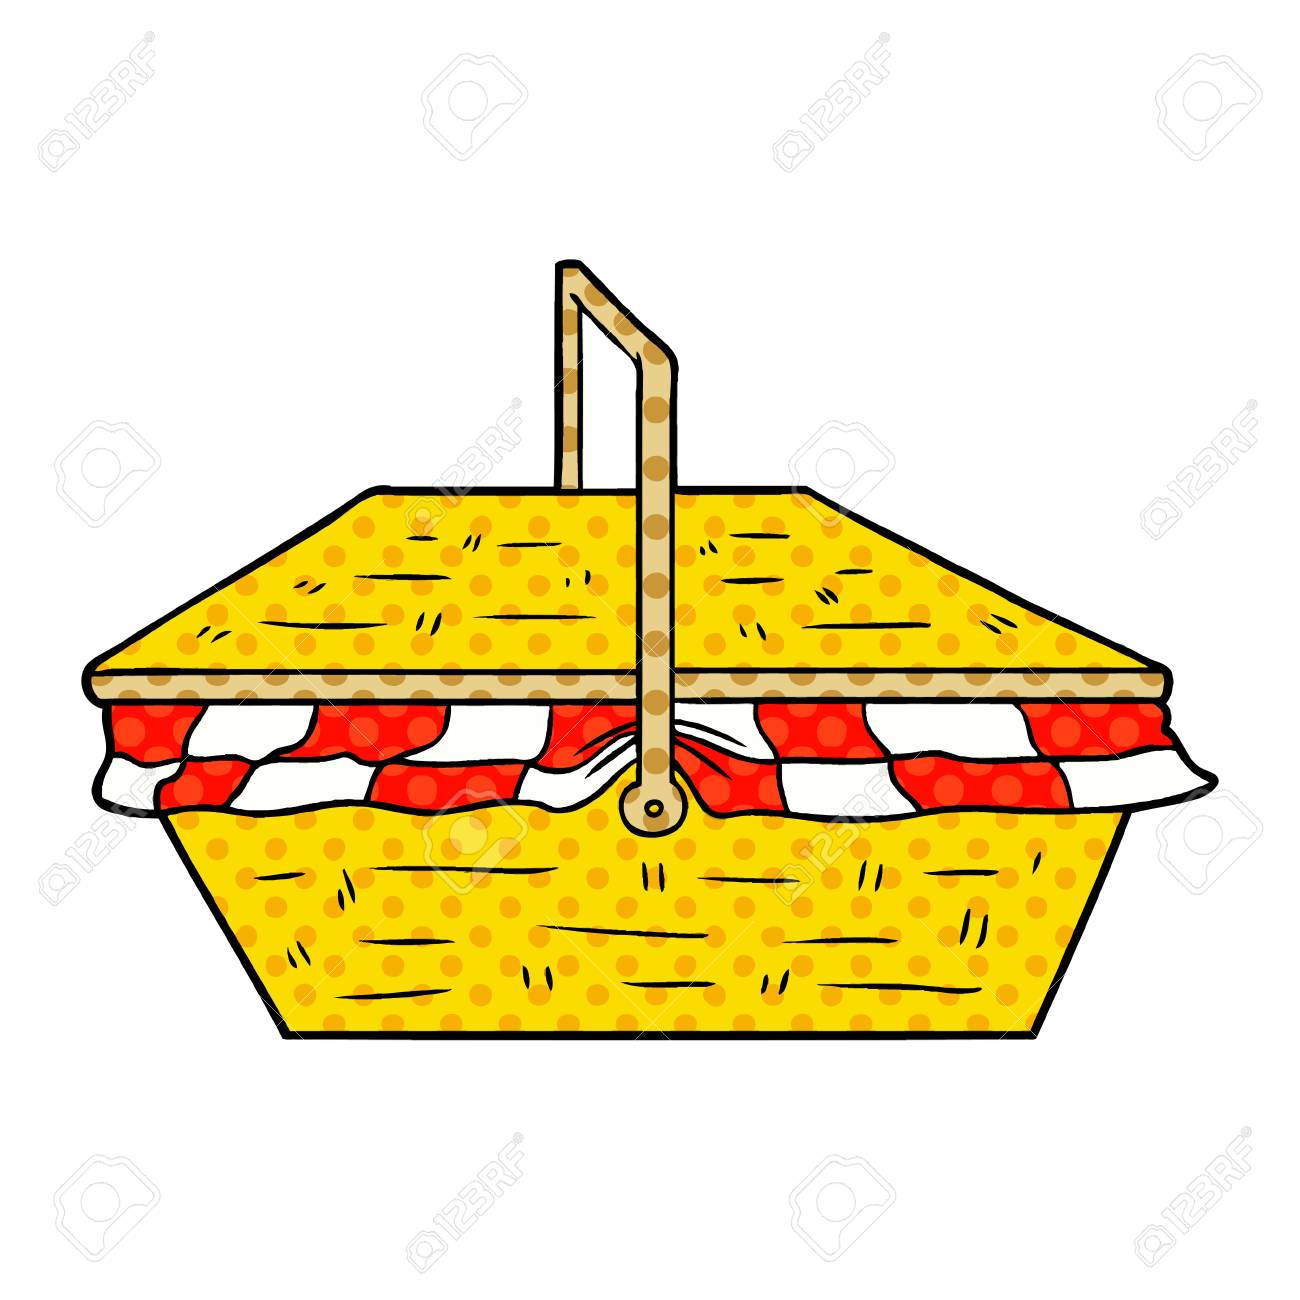 Cartoon Picnic Basket Royalty Free Cliparts Vectors And Stock Illustration Image 95585172